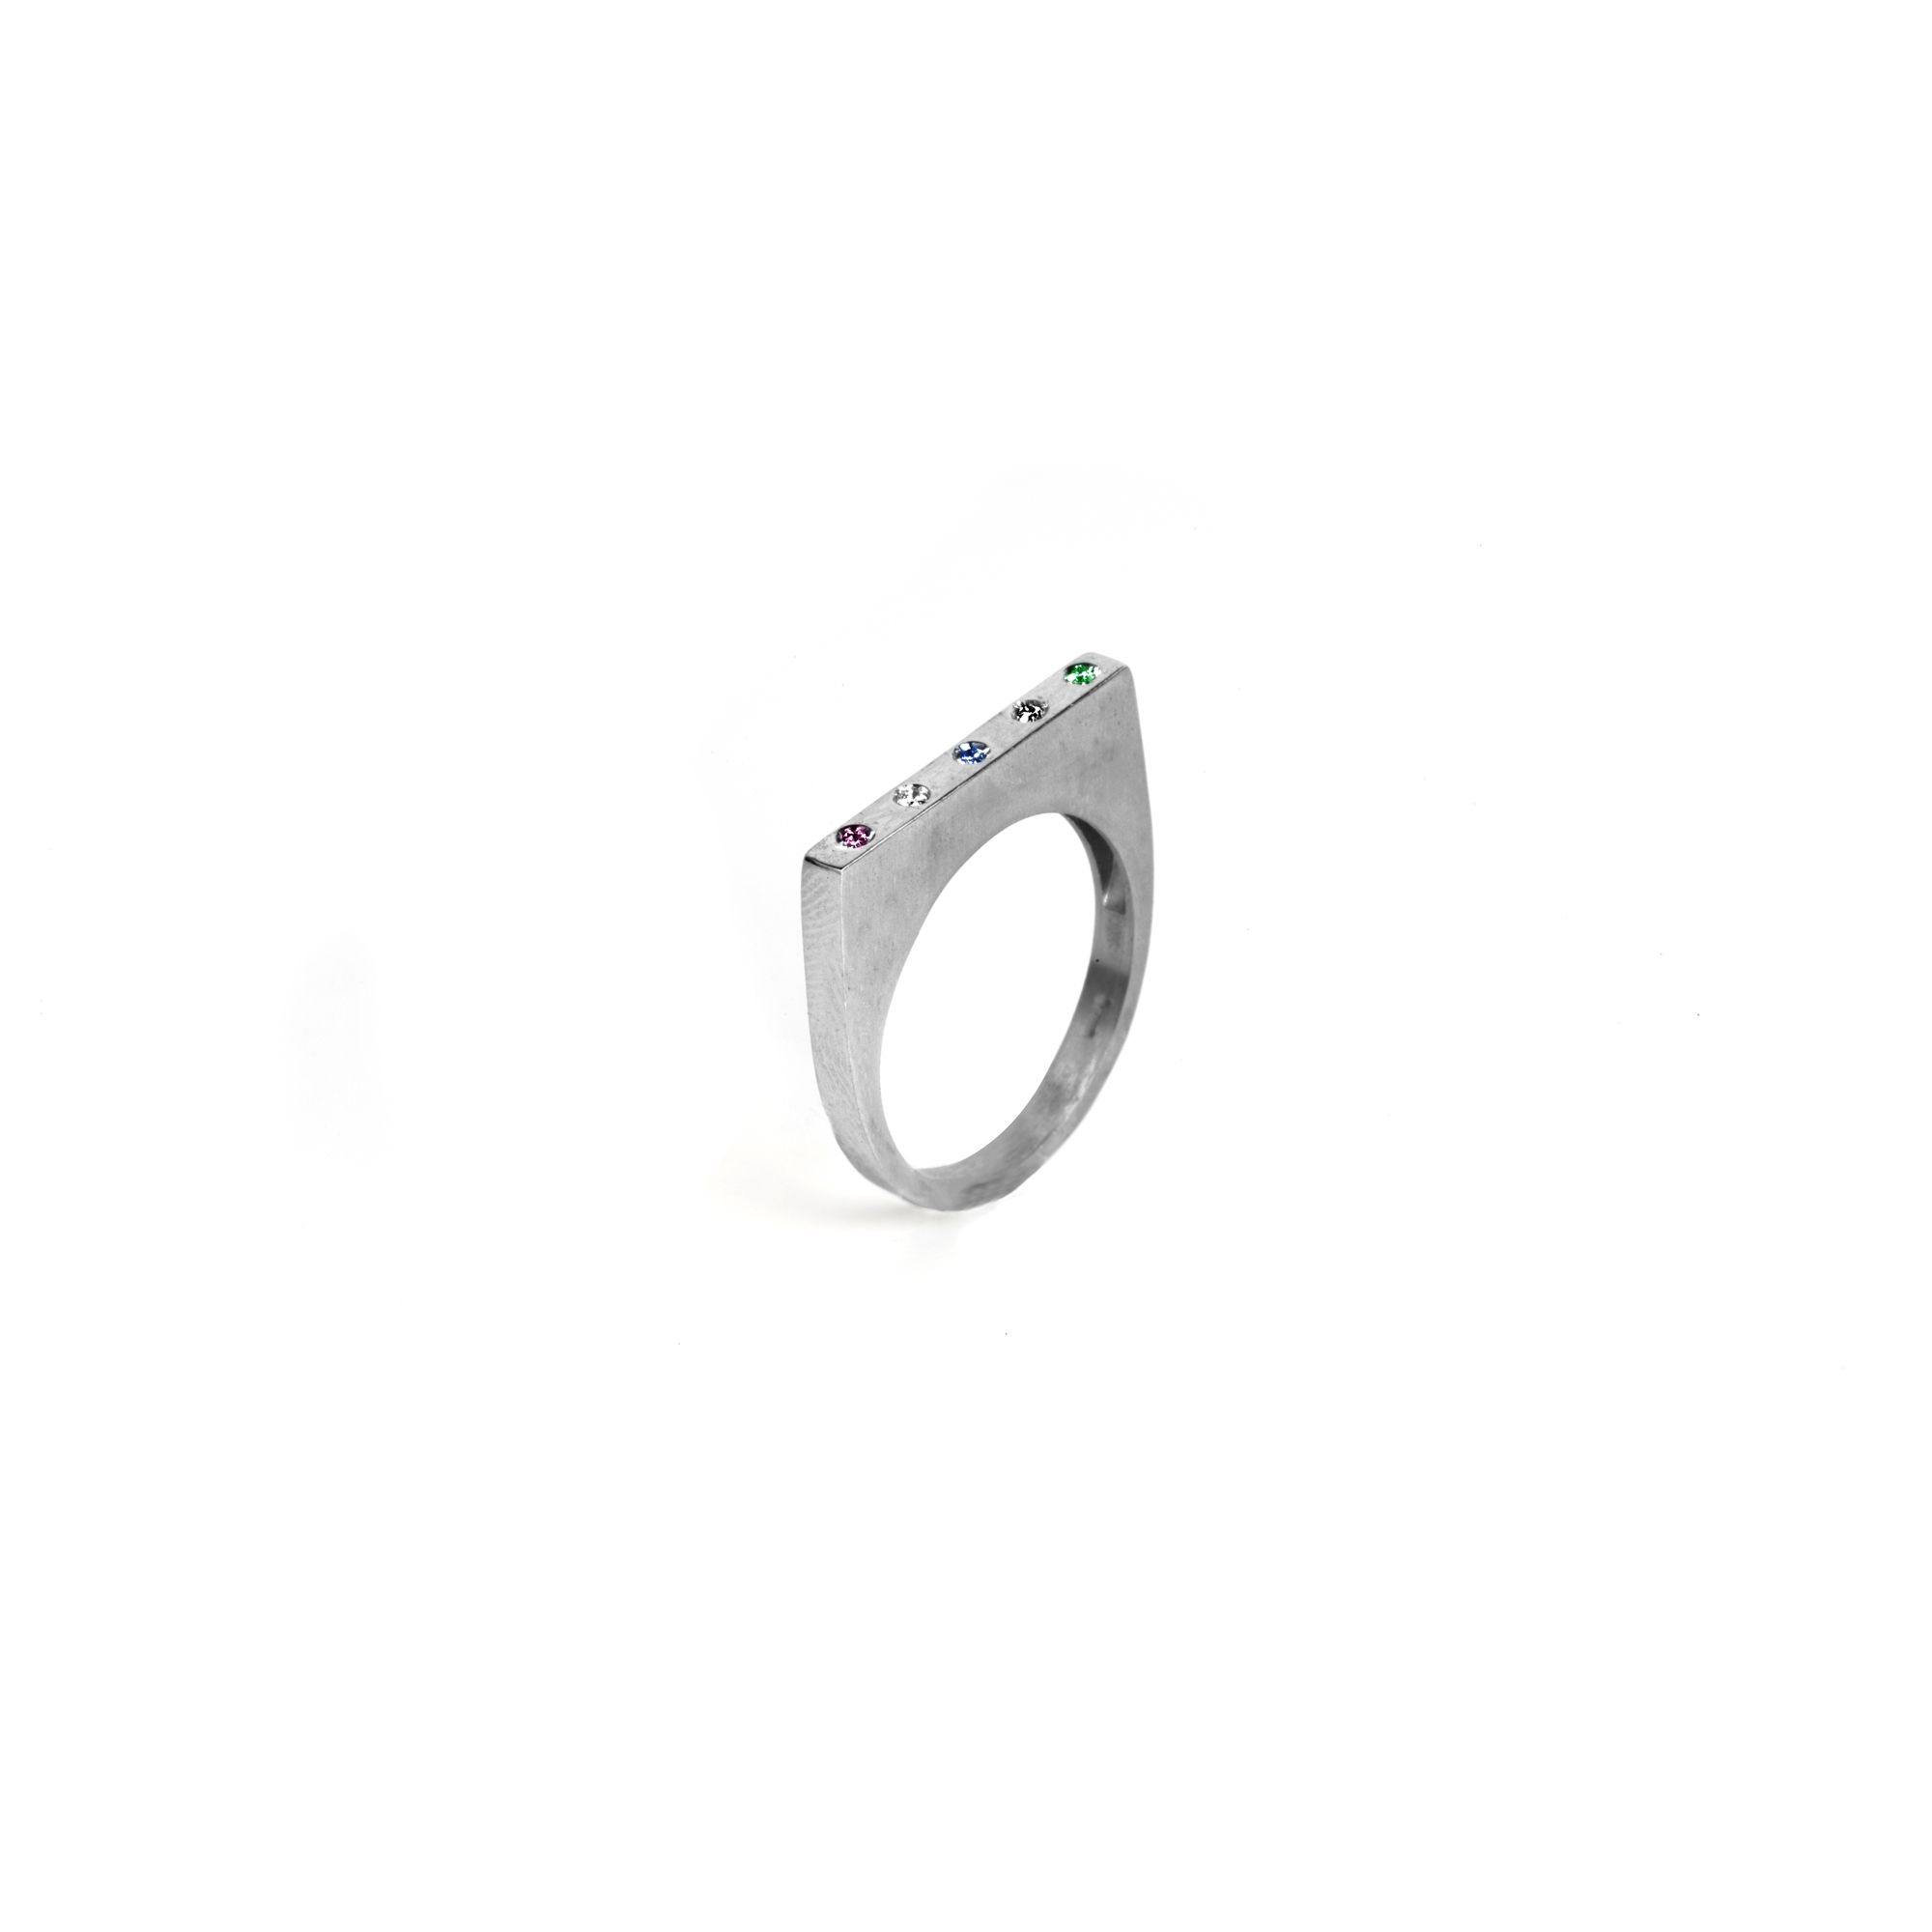 'Congiunzioni' modular square ring Ring in silver with colored sapphires